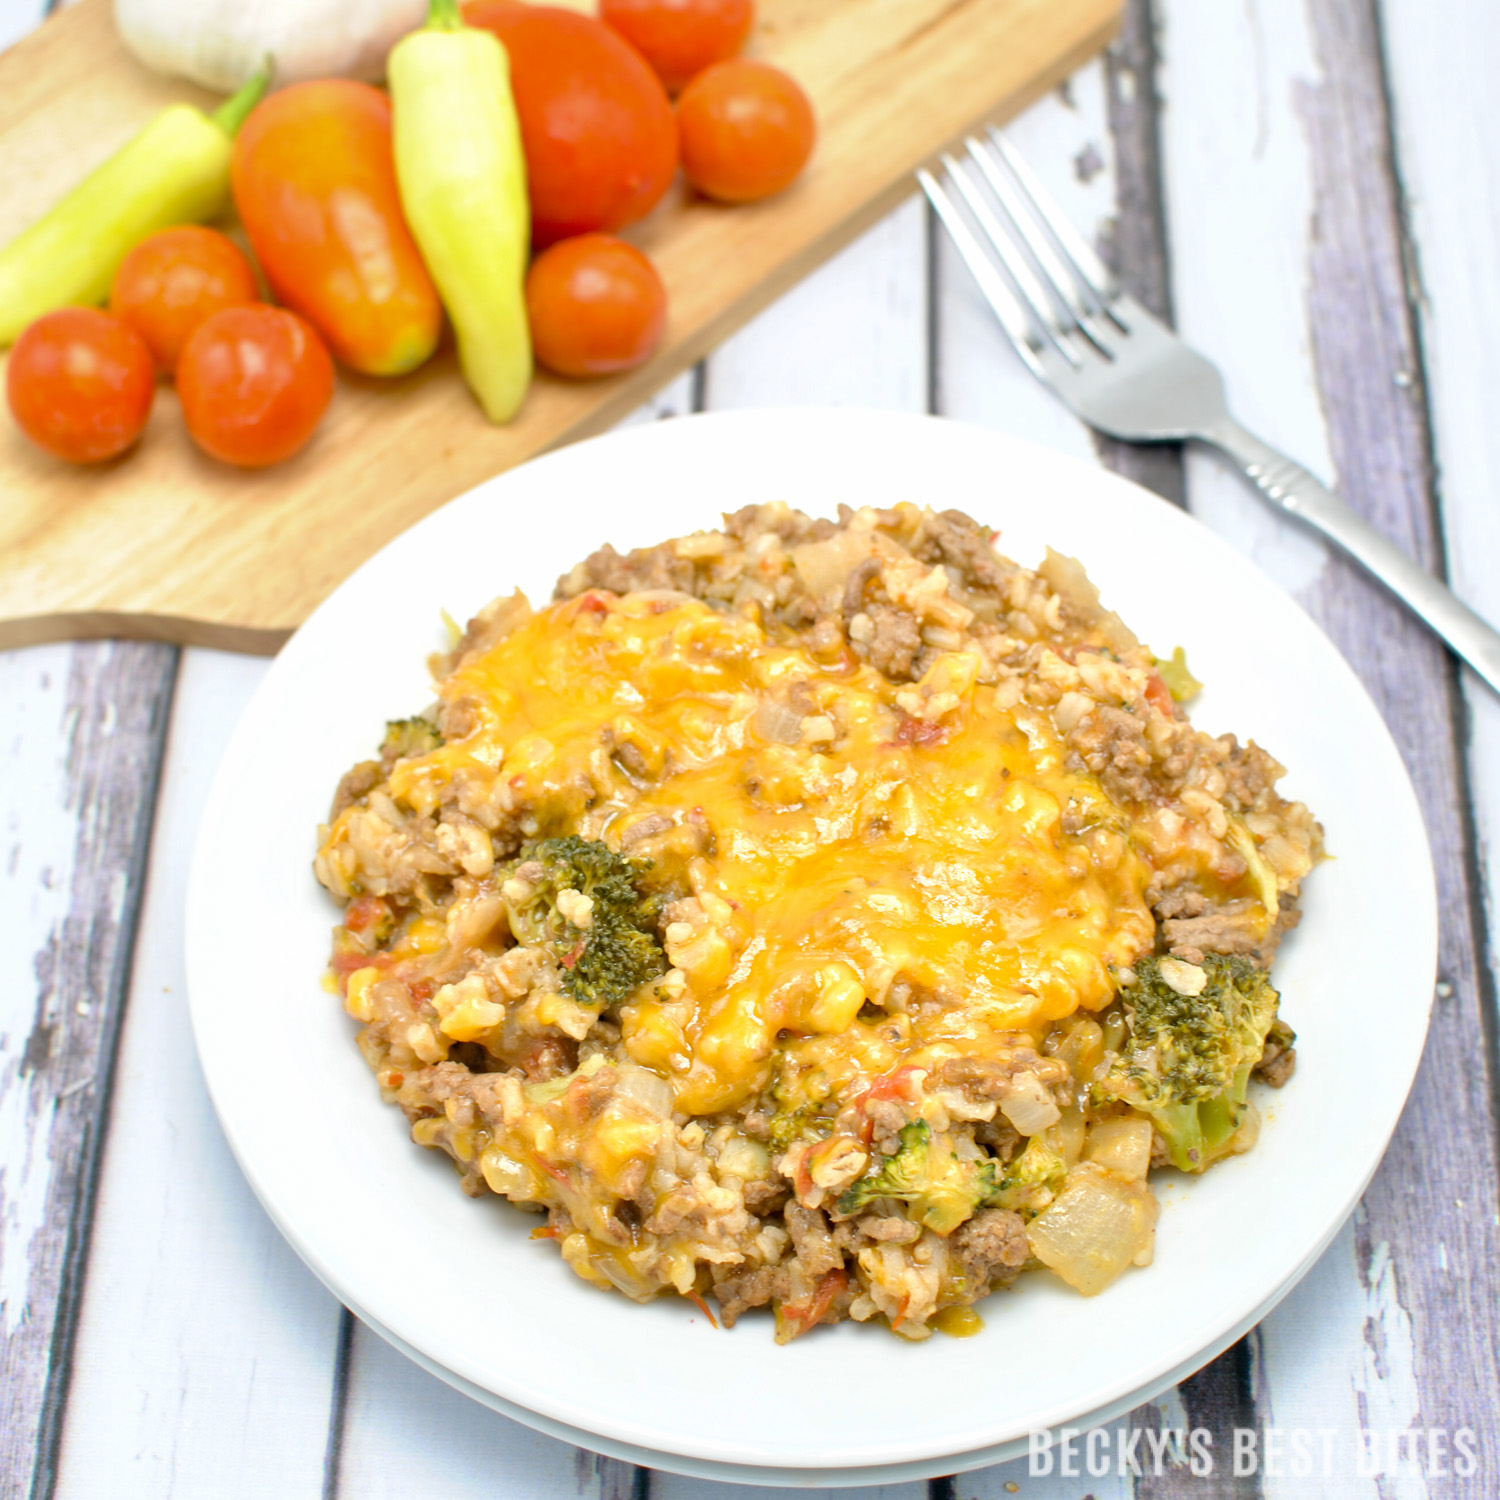 Cheesy Burger Skillet with Fresh Tomatoes, Broccoli and Rice is a healthy & easy one-pot weekday dinner recipe that is ready in 30 minutes or less. A new family meal favorite that includes fresh veggies and brown rice so you can feel good about serving it and the kiddos will love it!  beckysbestbites.com